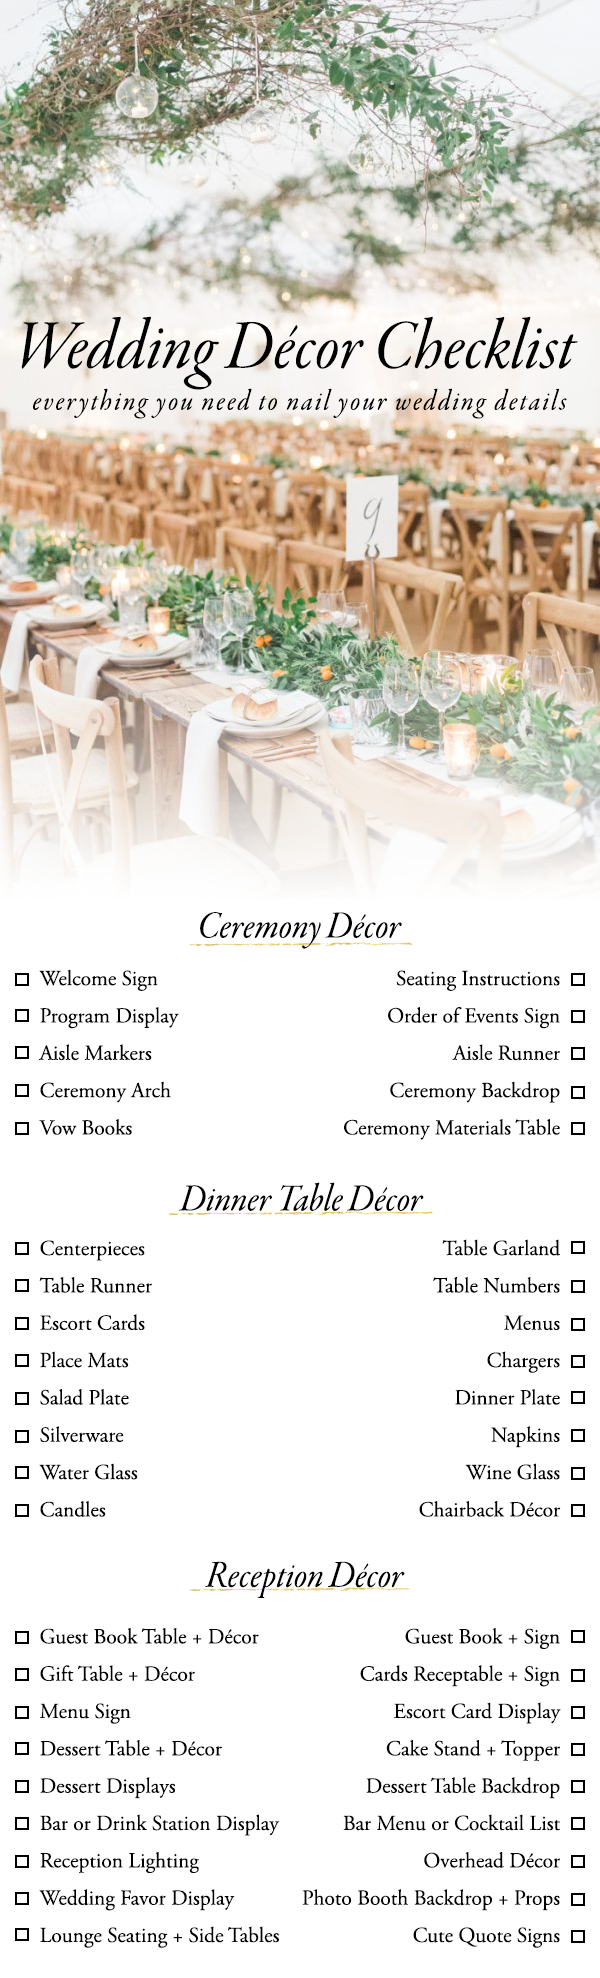 Wedding Decor Details Use This Wedding Dcor Checklist To Help You Nail Every Detail